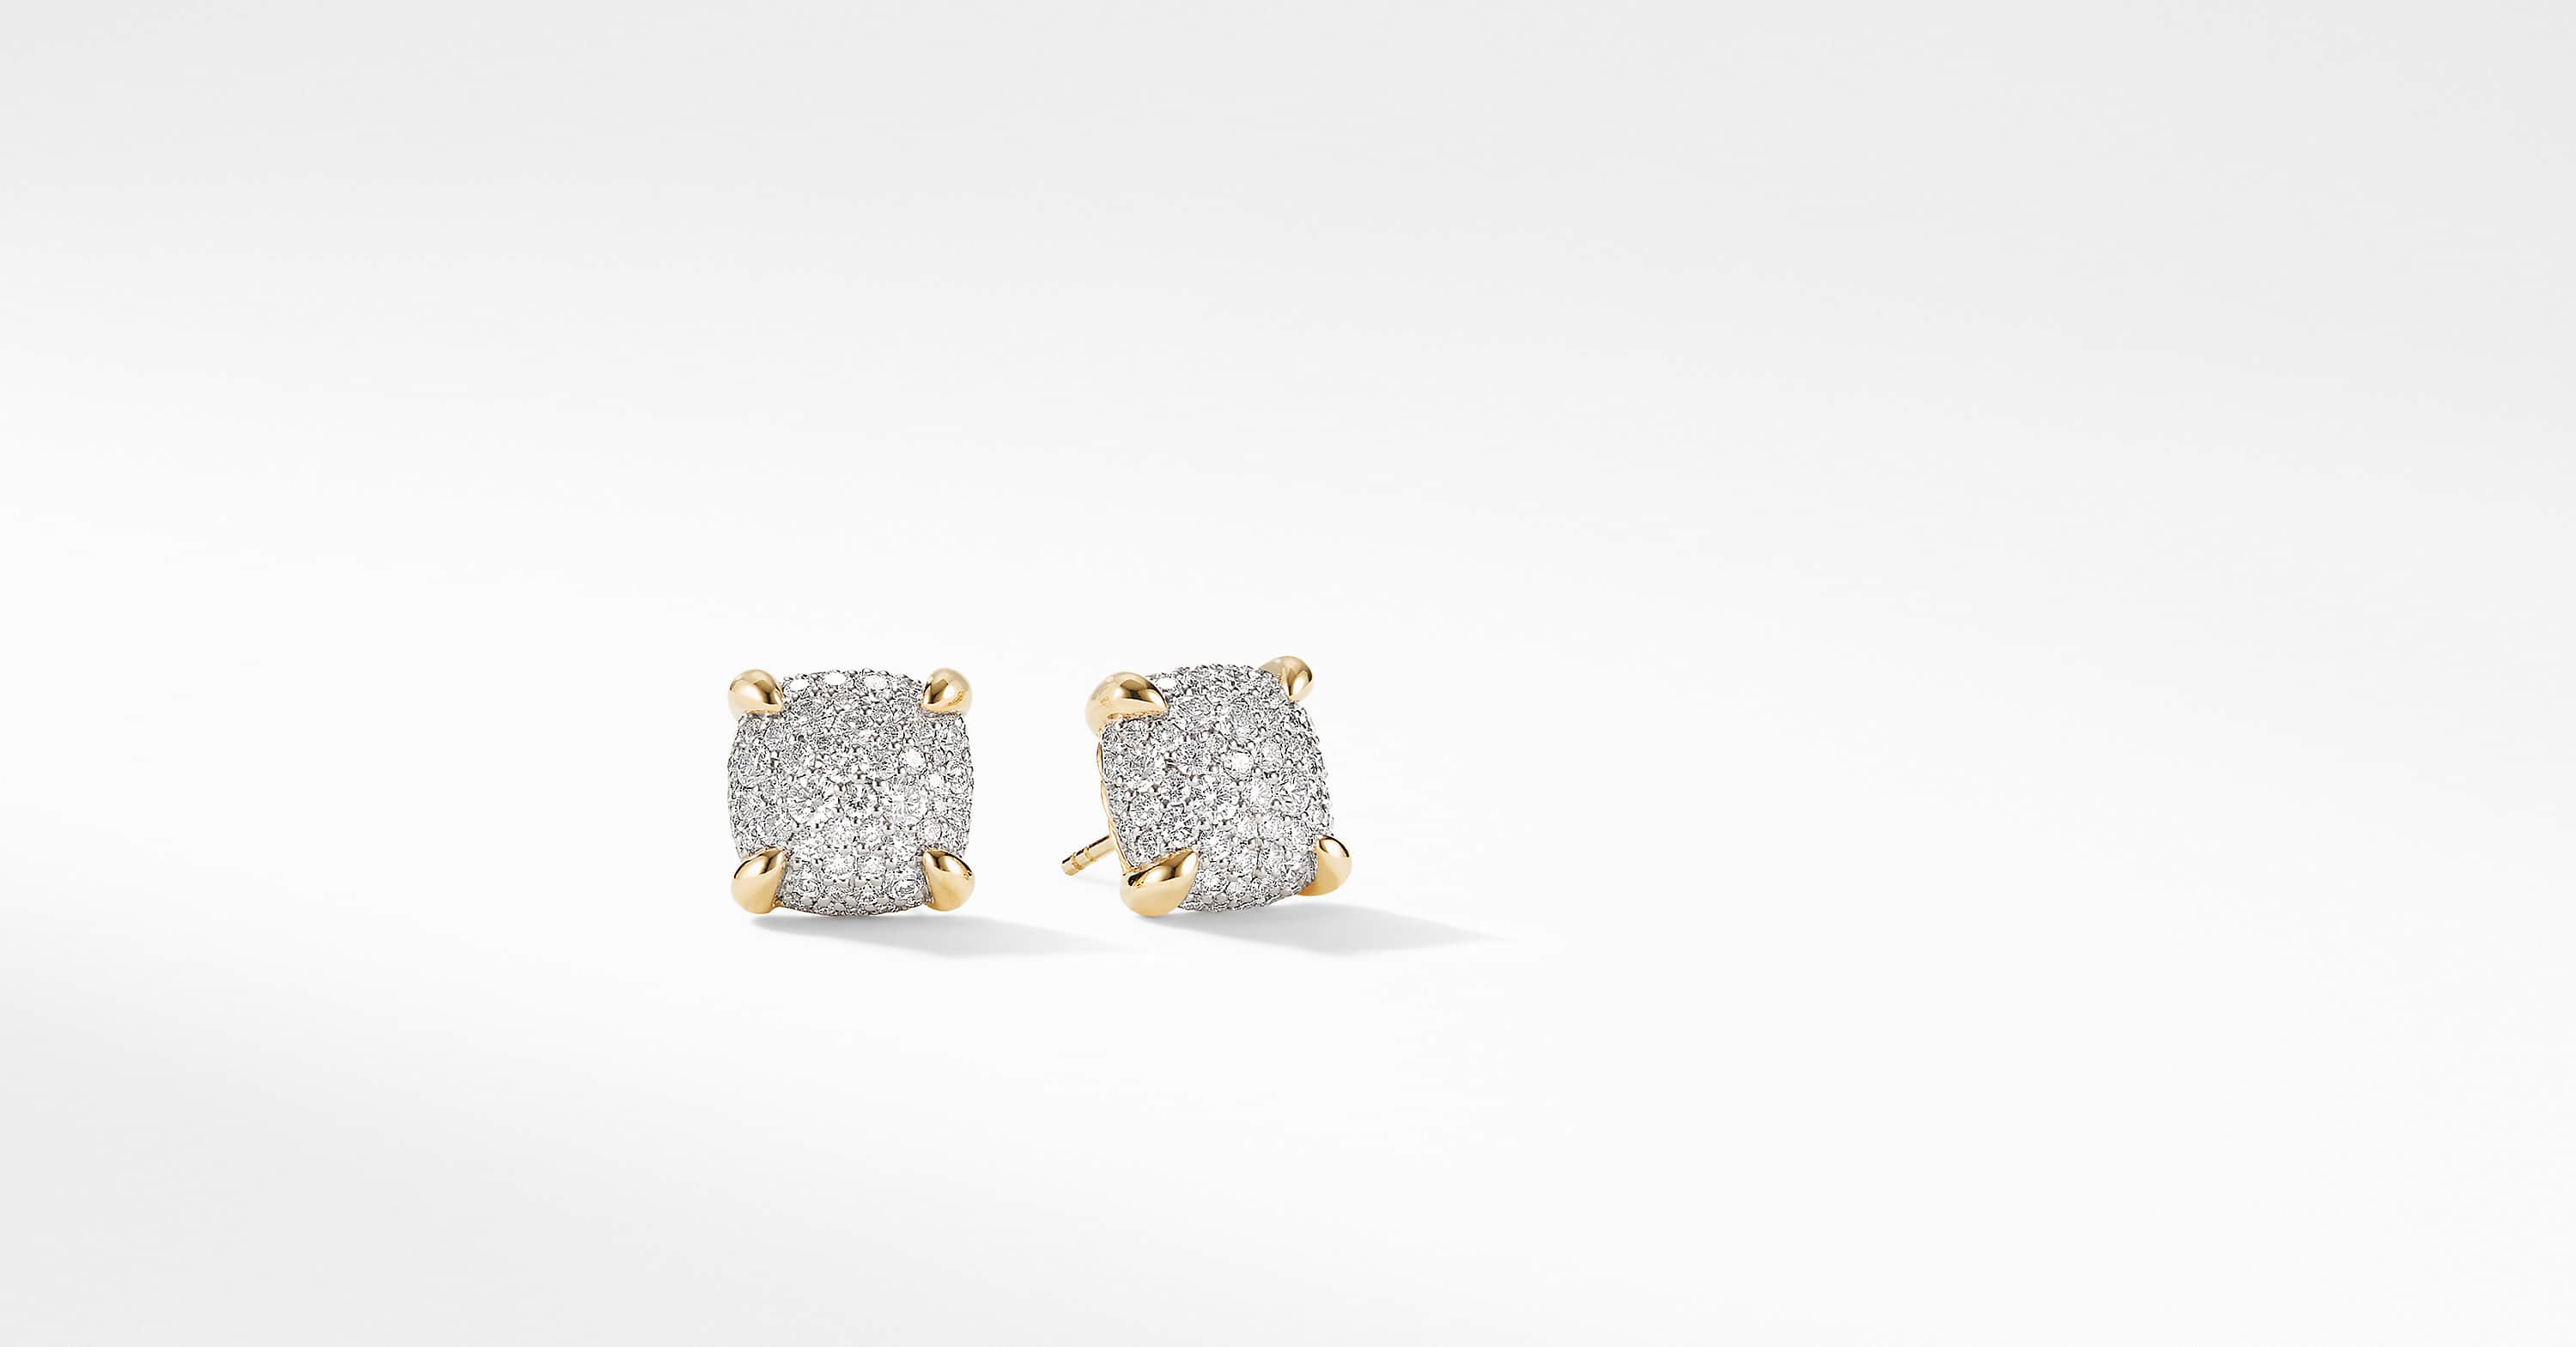 Chatelaine Stud Earrings in 18K Yellow Gold with Full Pavé, 11mm